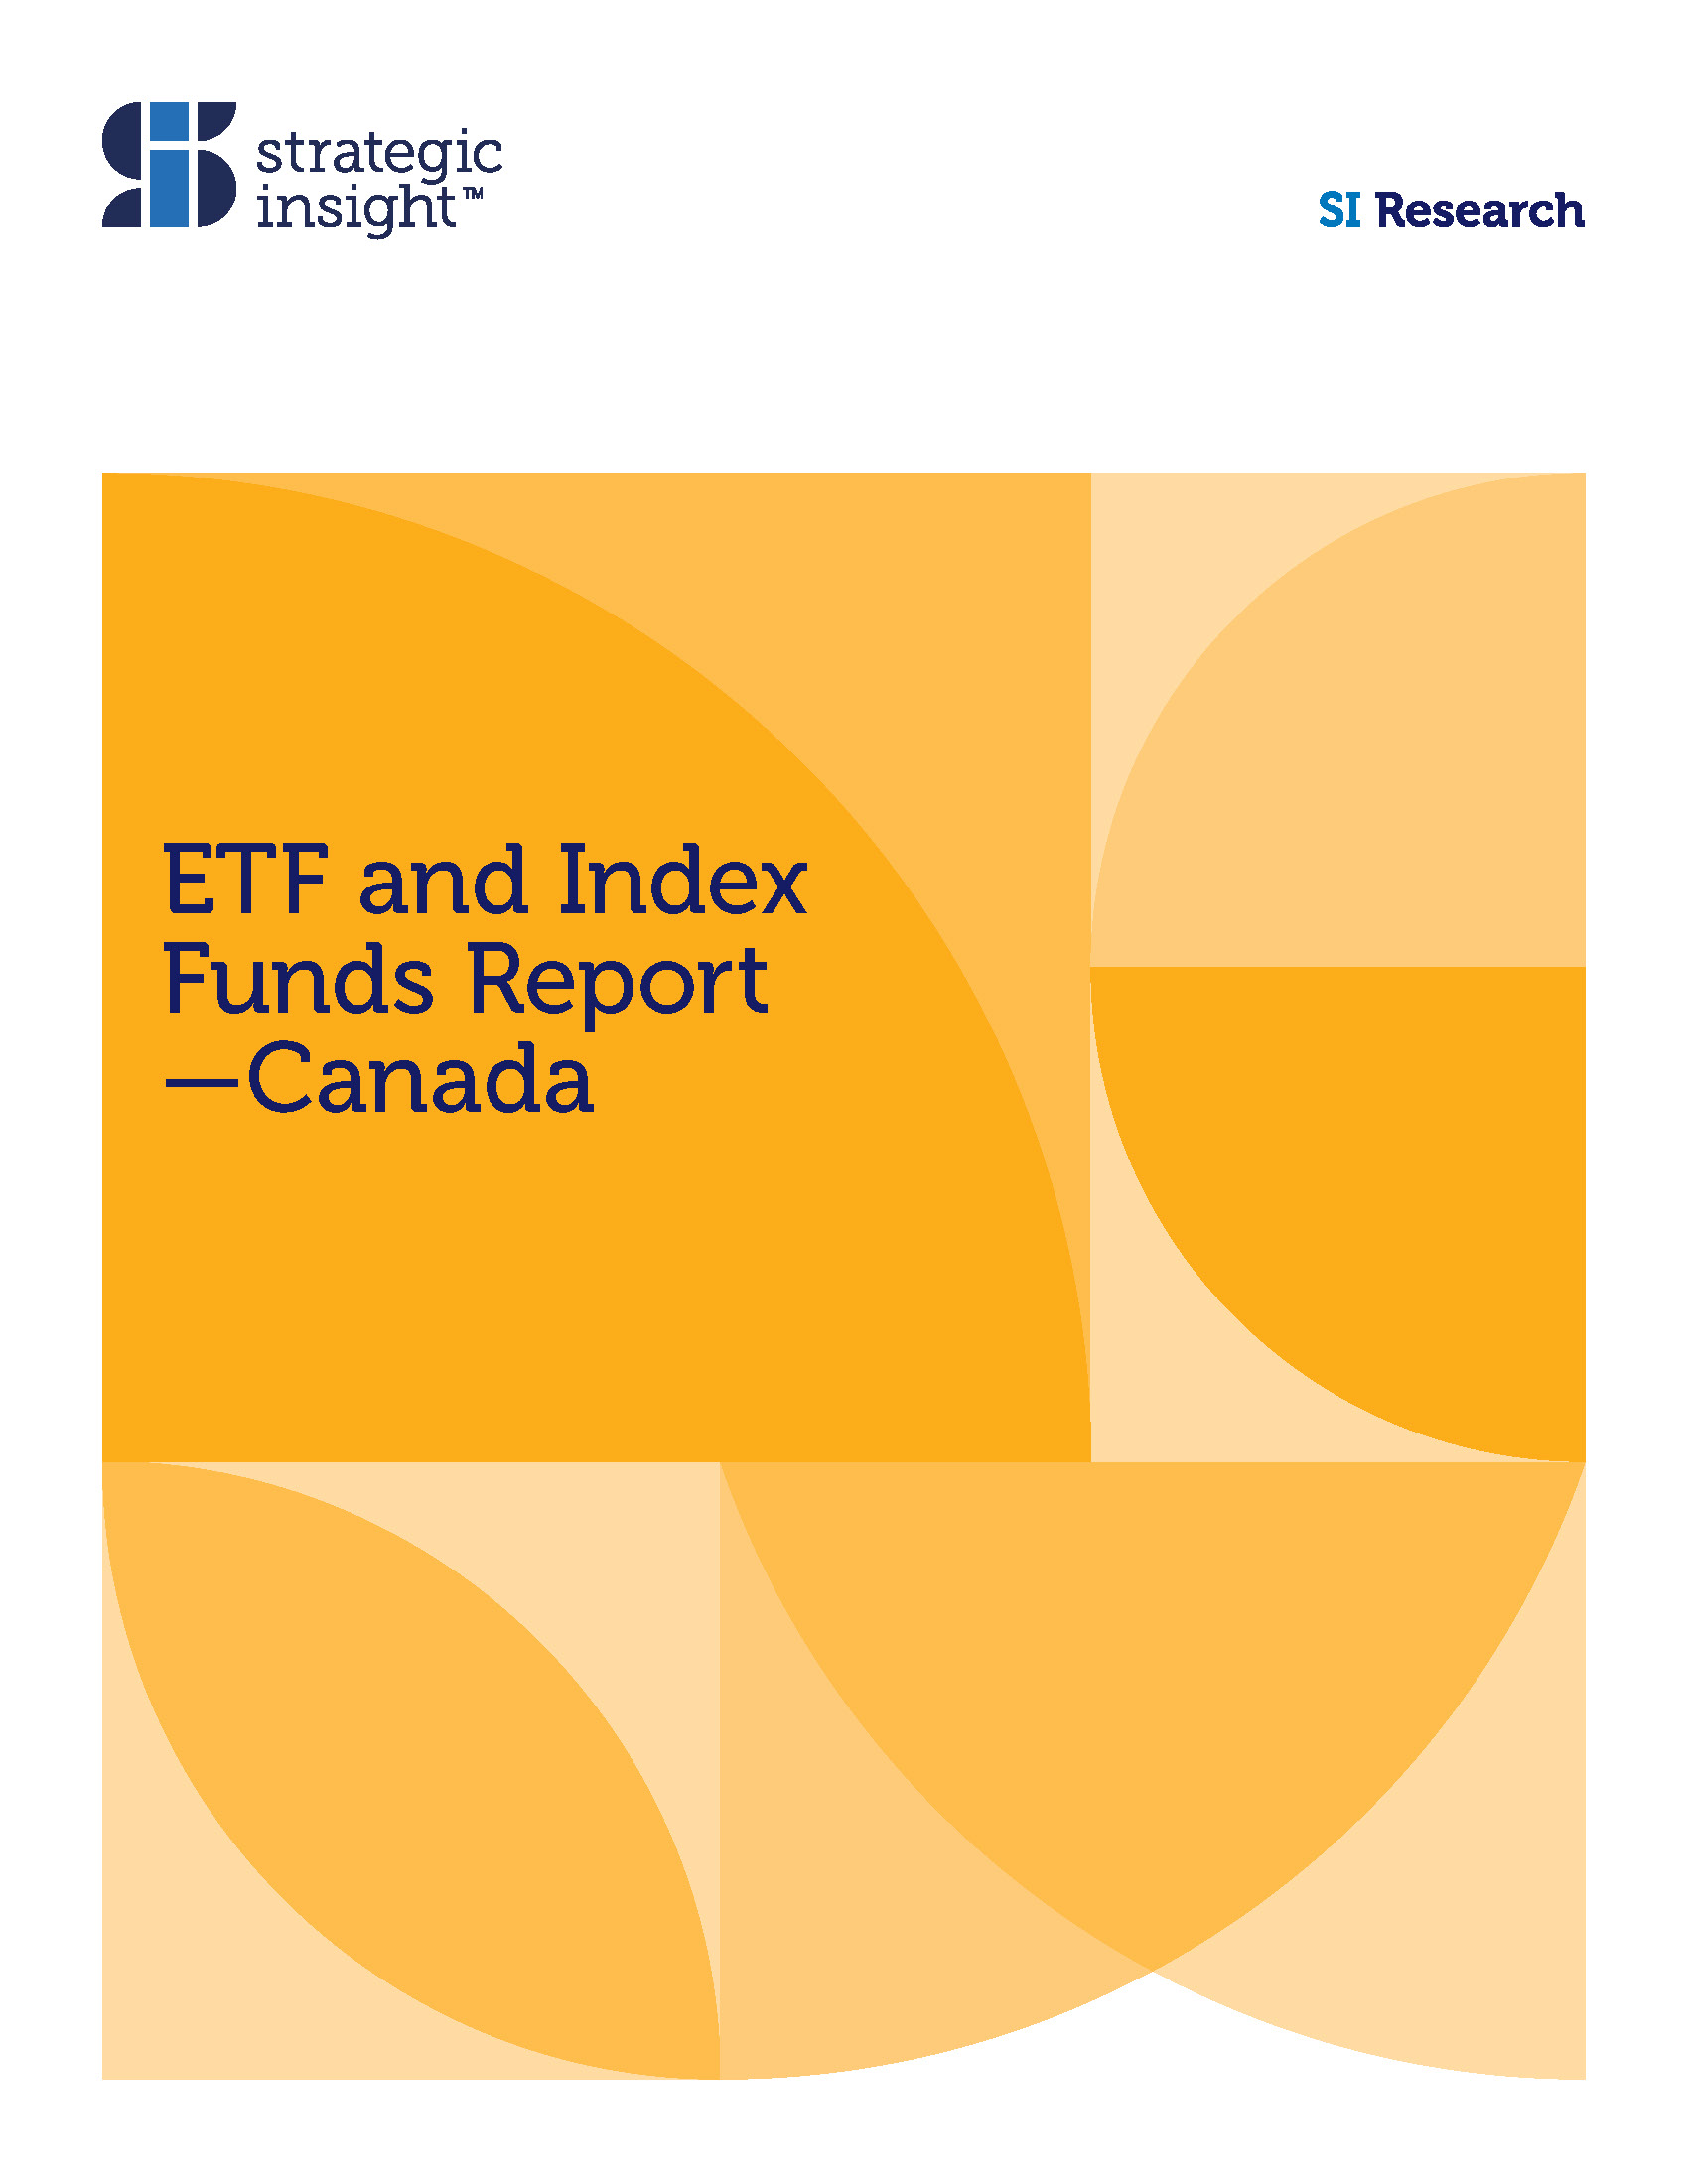 ETF and Index Funds Report Q4 2018